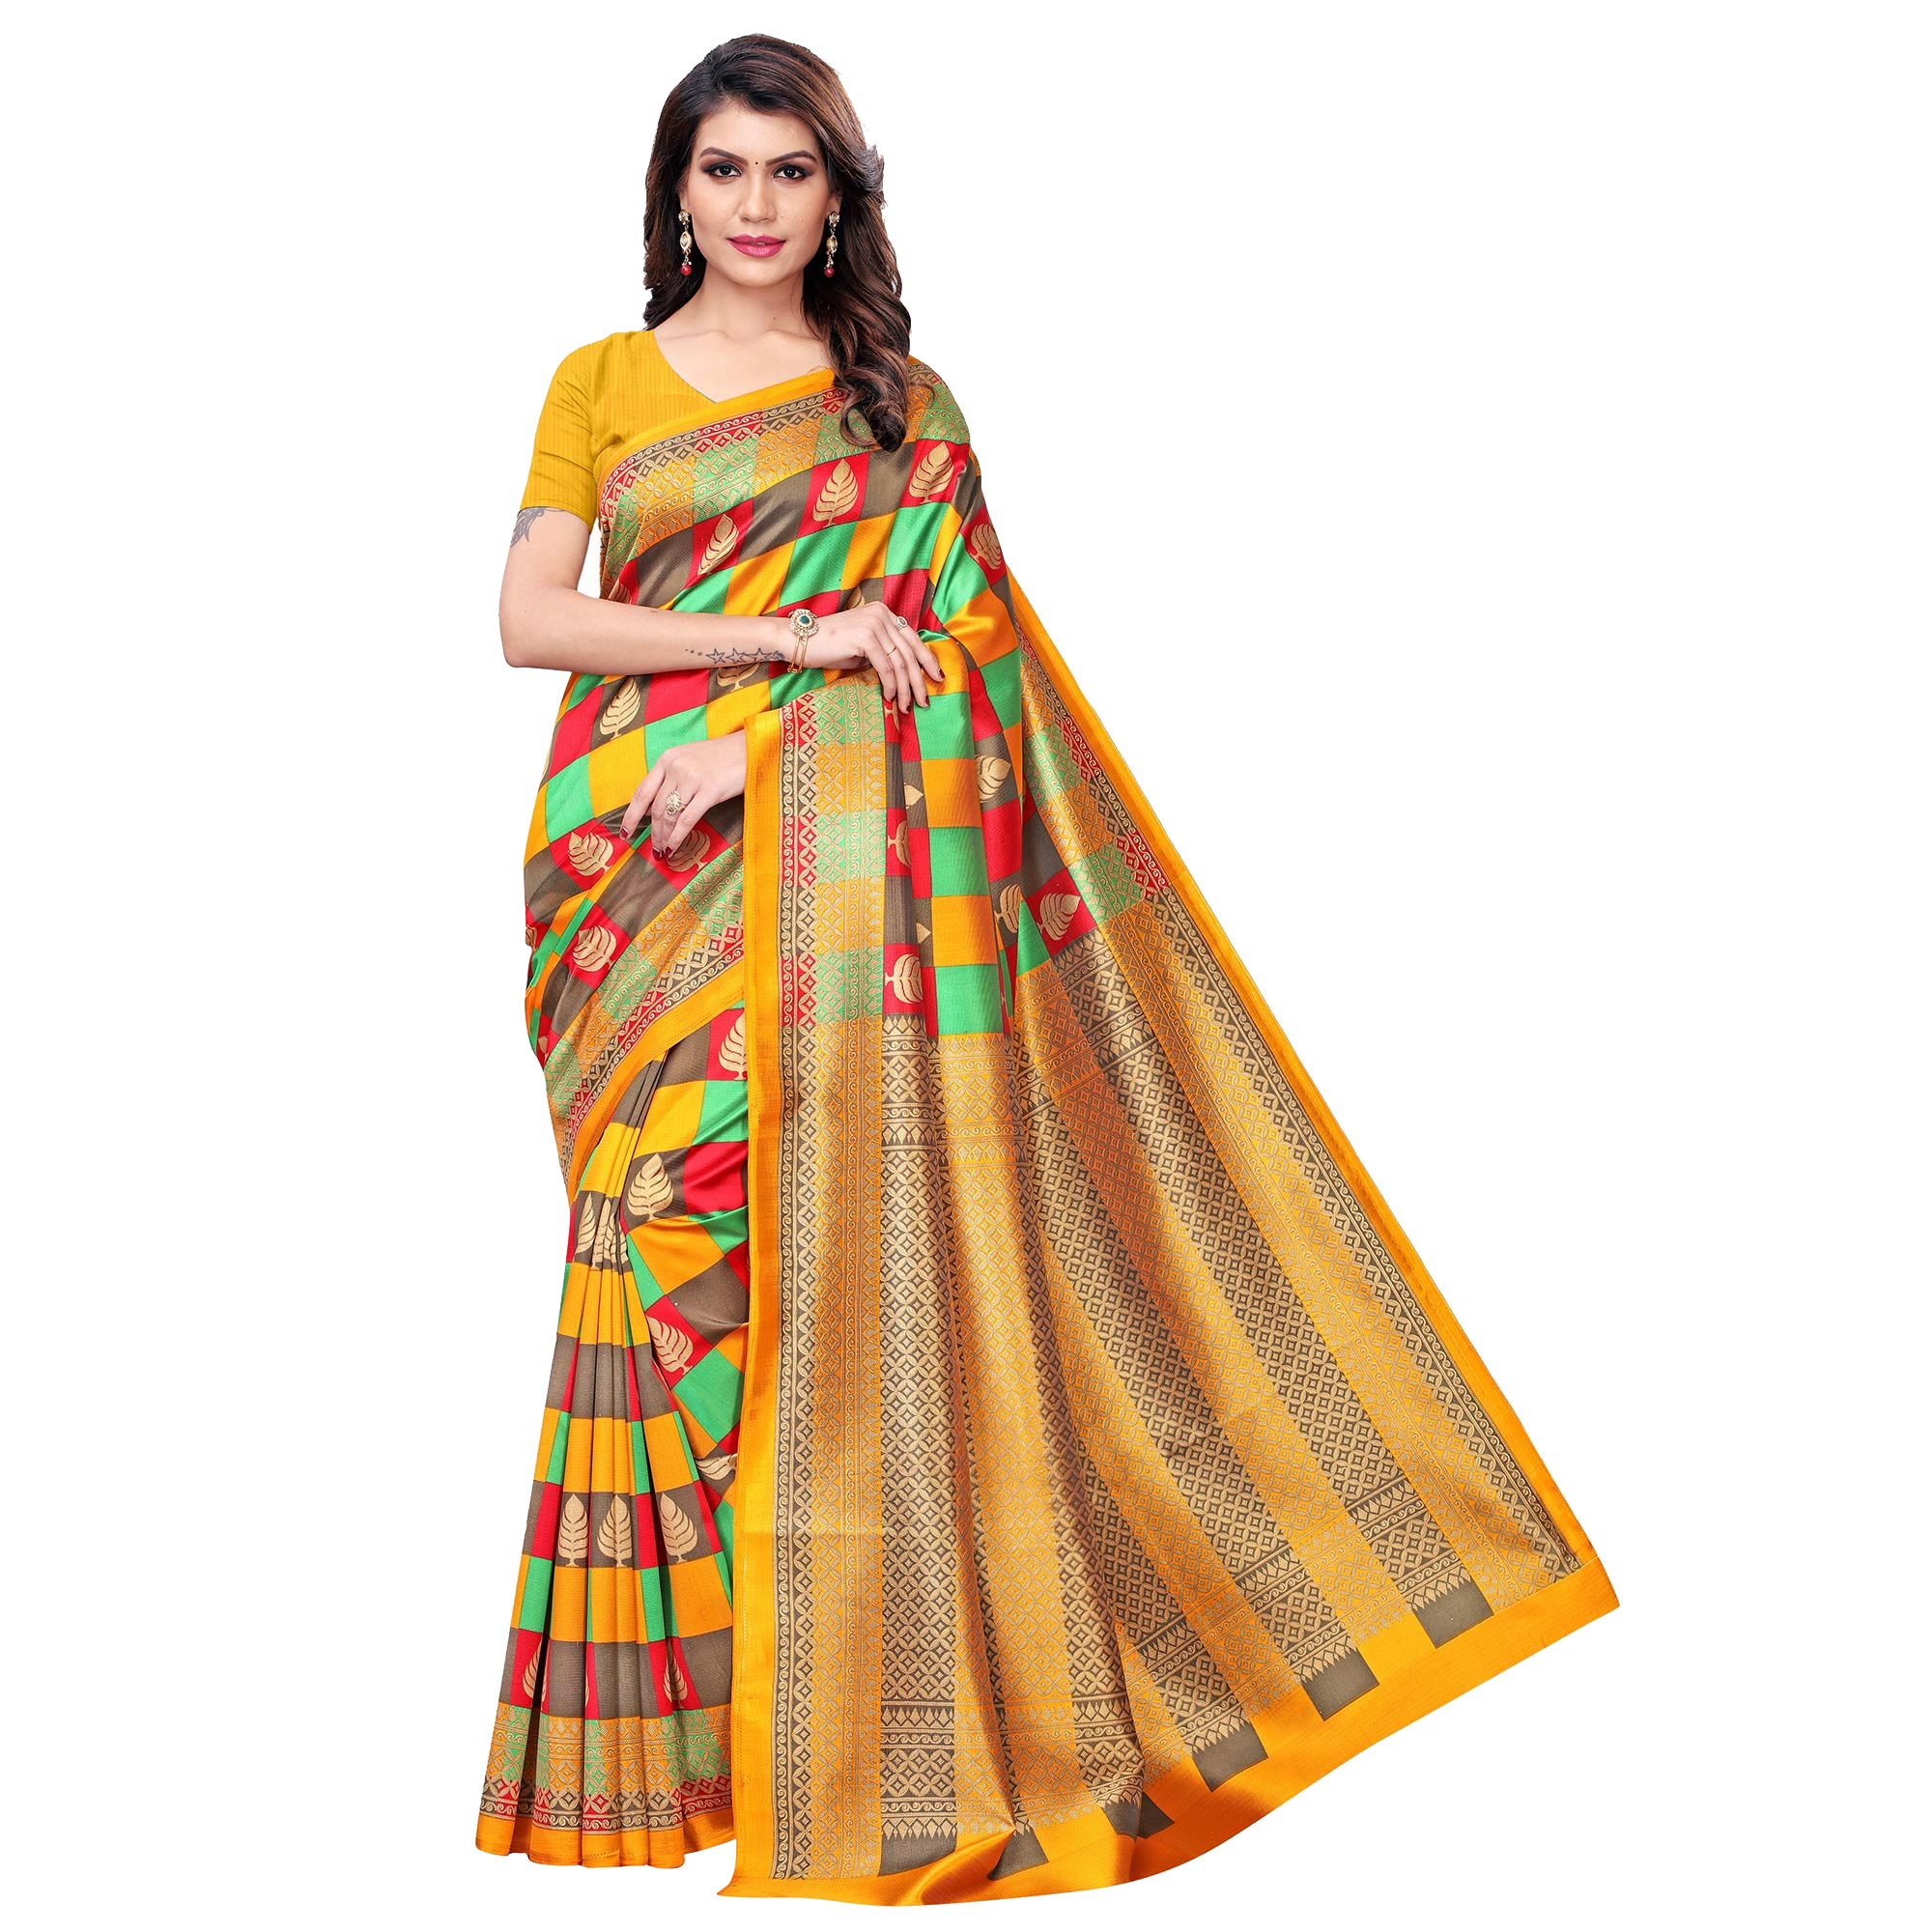 Majesty Casual Printed Art Silk Saree - Pack of 2